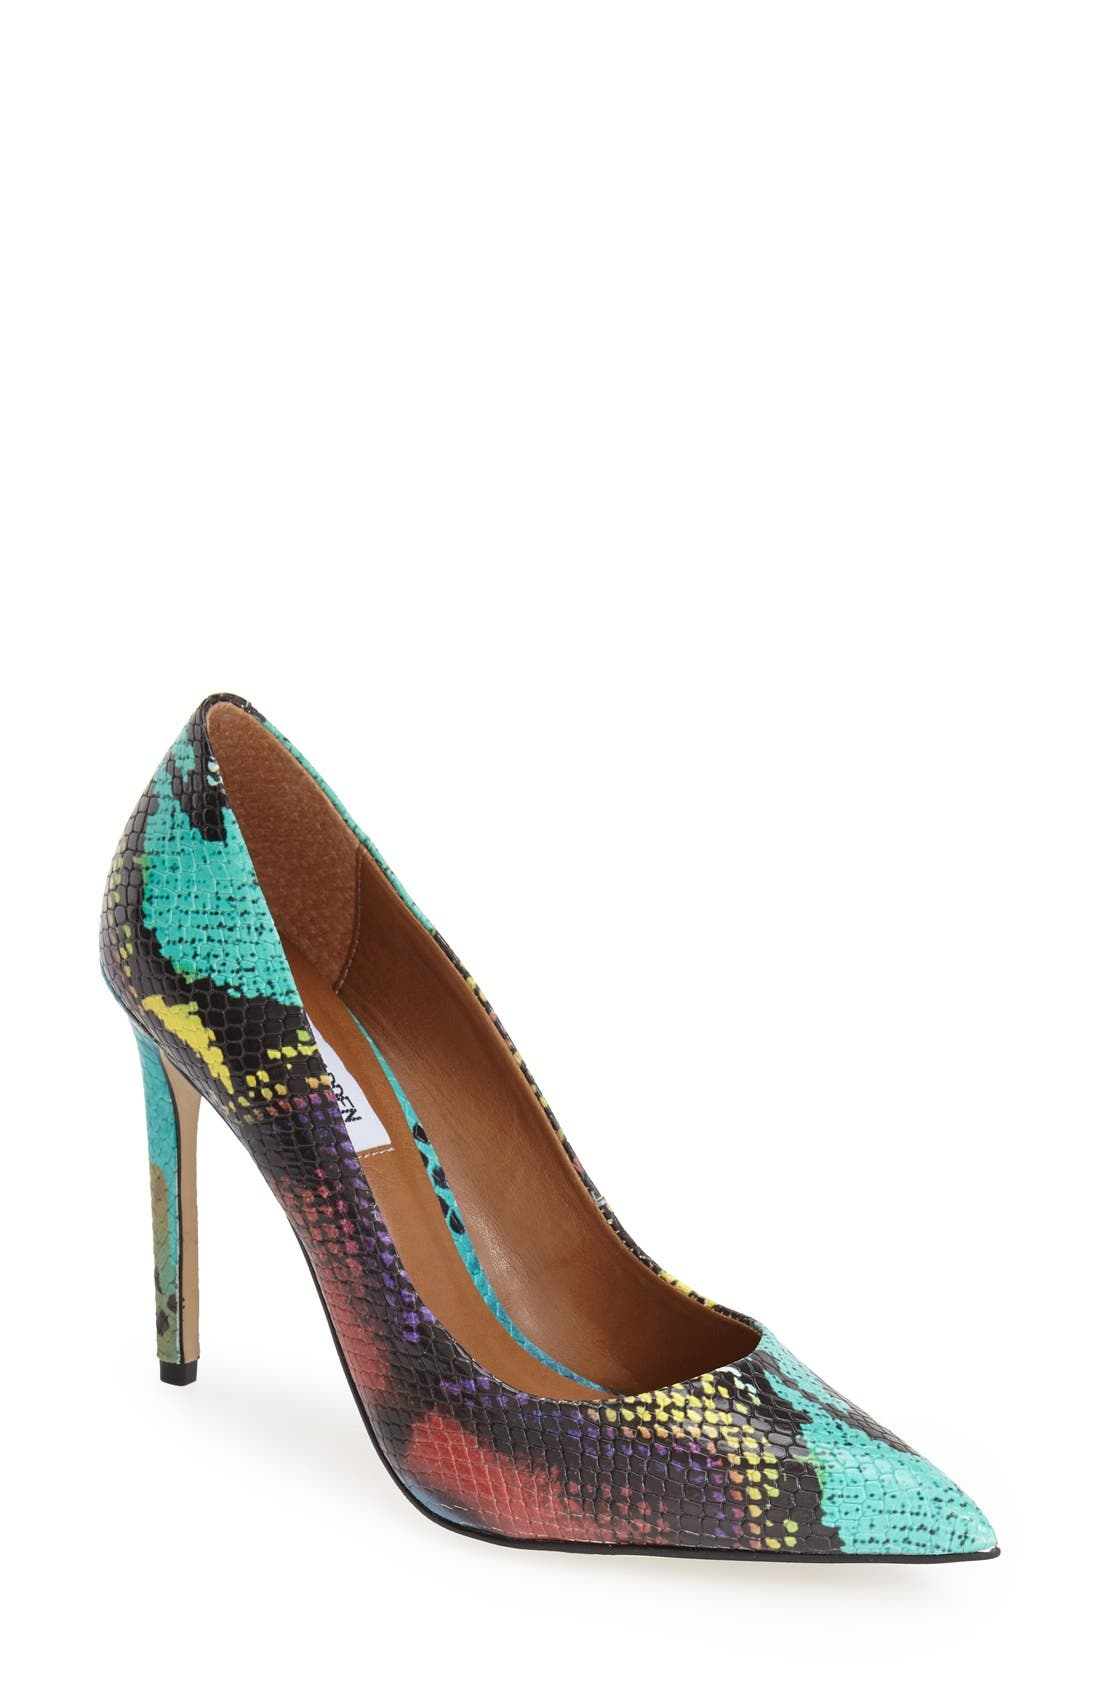 Alternate Image 1 Selected - Steve Madden 'Proto' Pointy Toe Pump (Women)